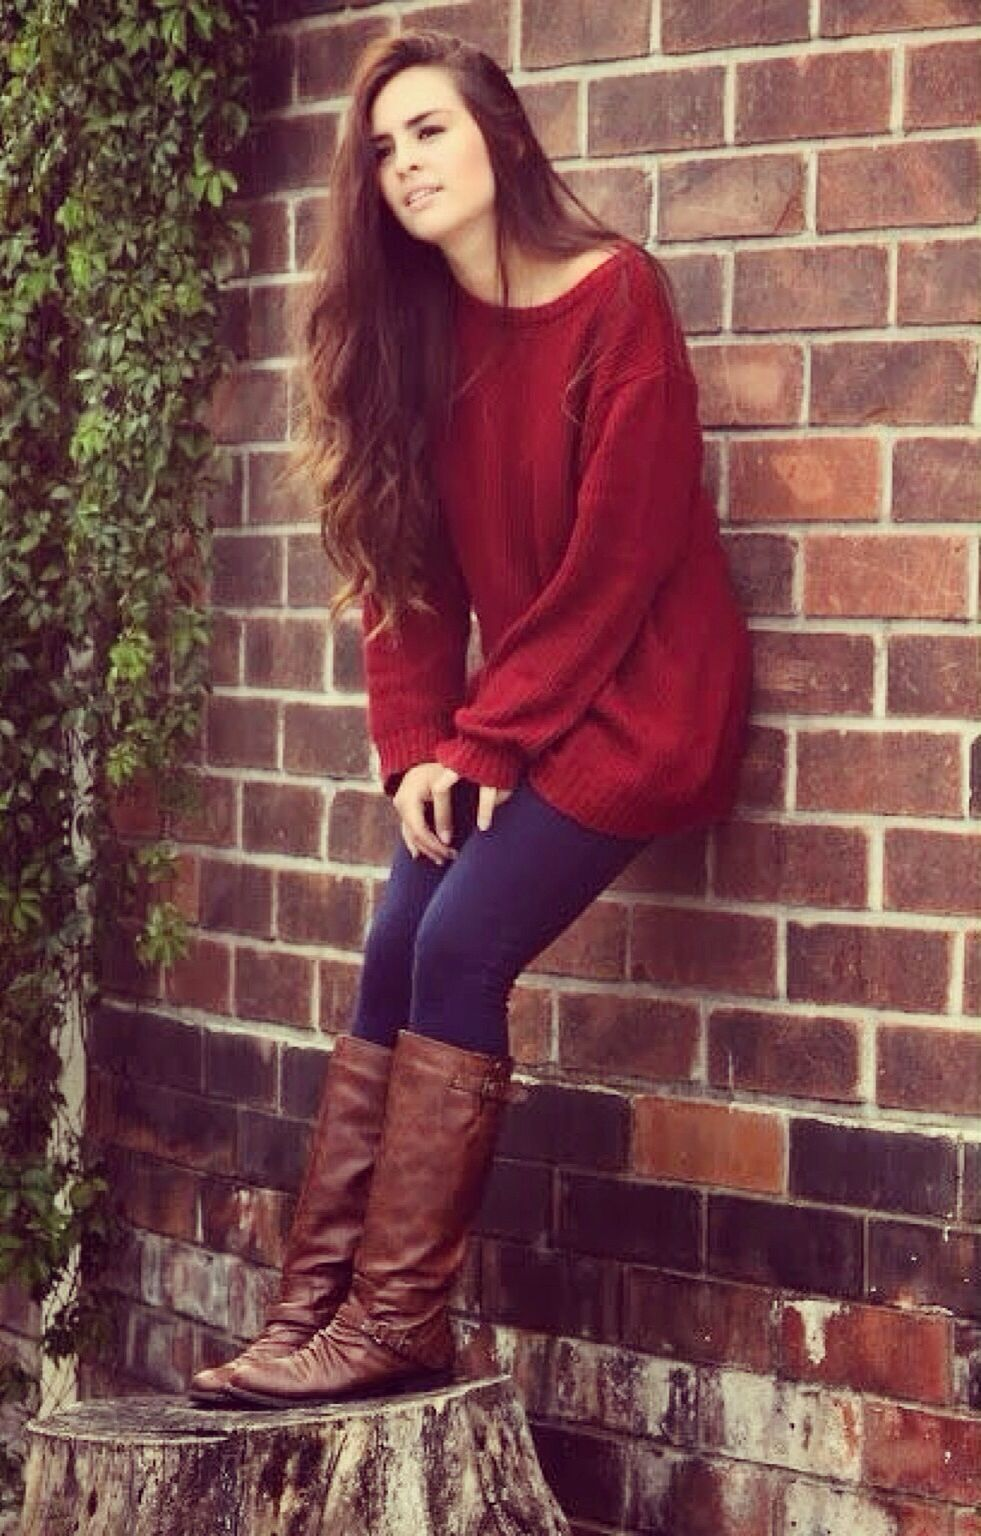 567bdfbdd95 oversized red sweater + navy leggings + riding boots.